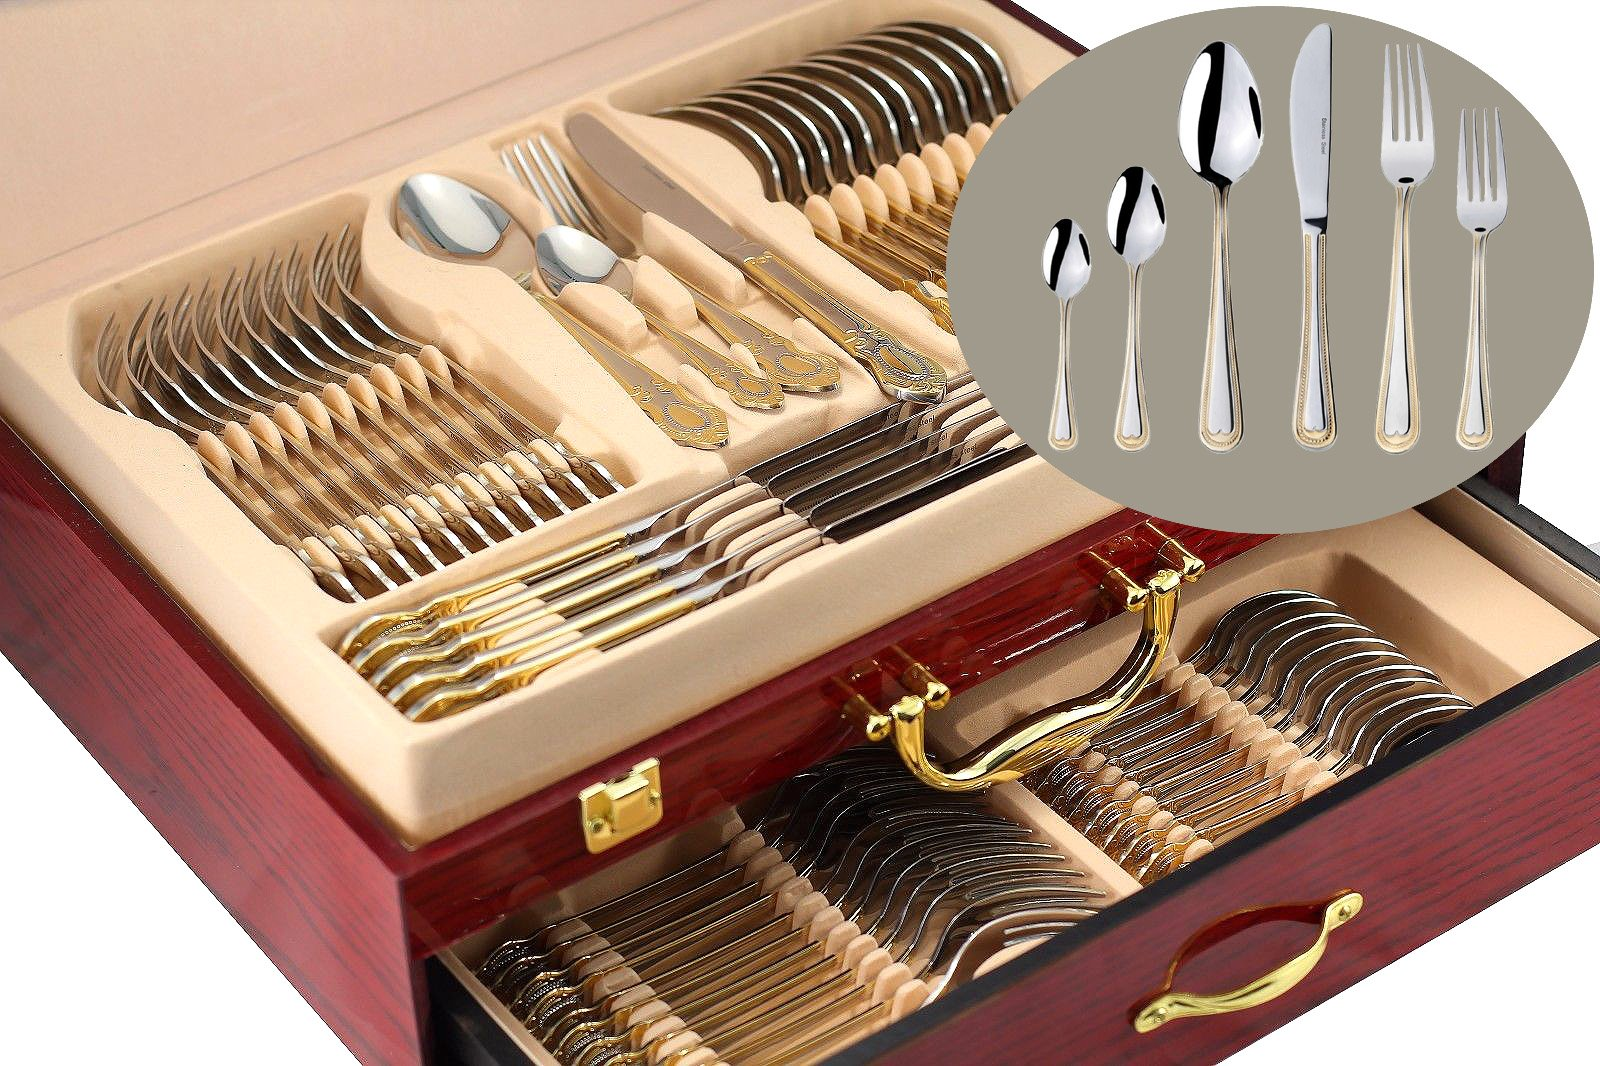 75-Piece Gold Flatware Set Dining Service for 12, 18/10 Premium Stainless Steel, 24K Gold-Plated Trim, Silverware Serving Set, Wood Storage Case (''Madison'')